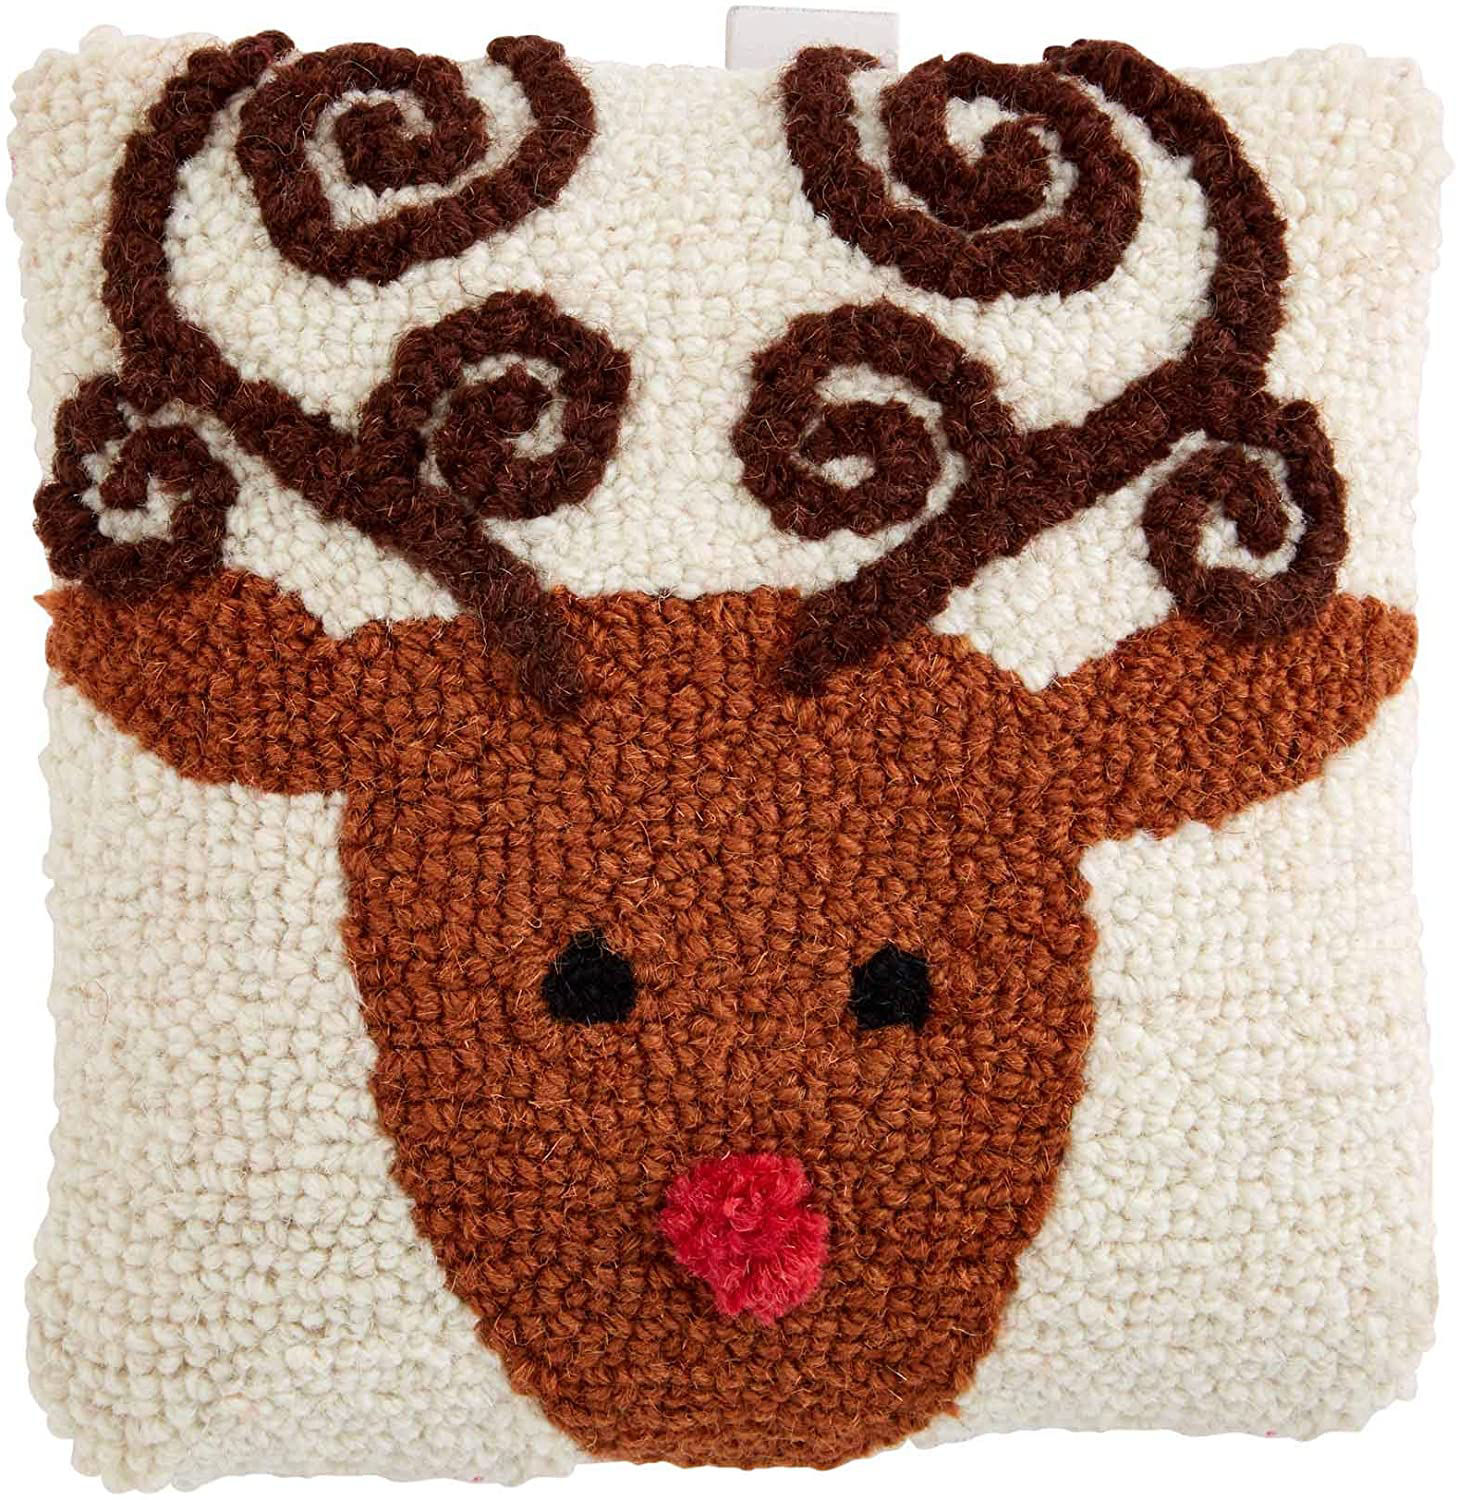 Mini Christmas Hooked Pillow (Assorted) by Mudpie